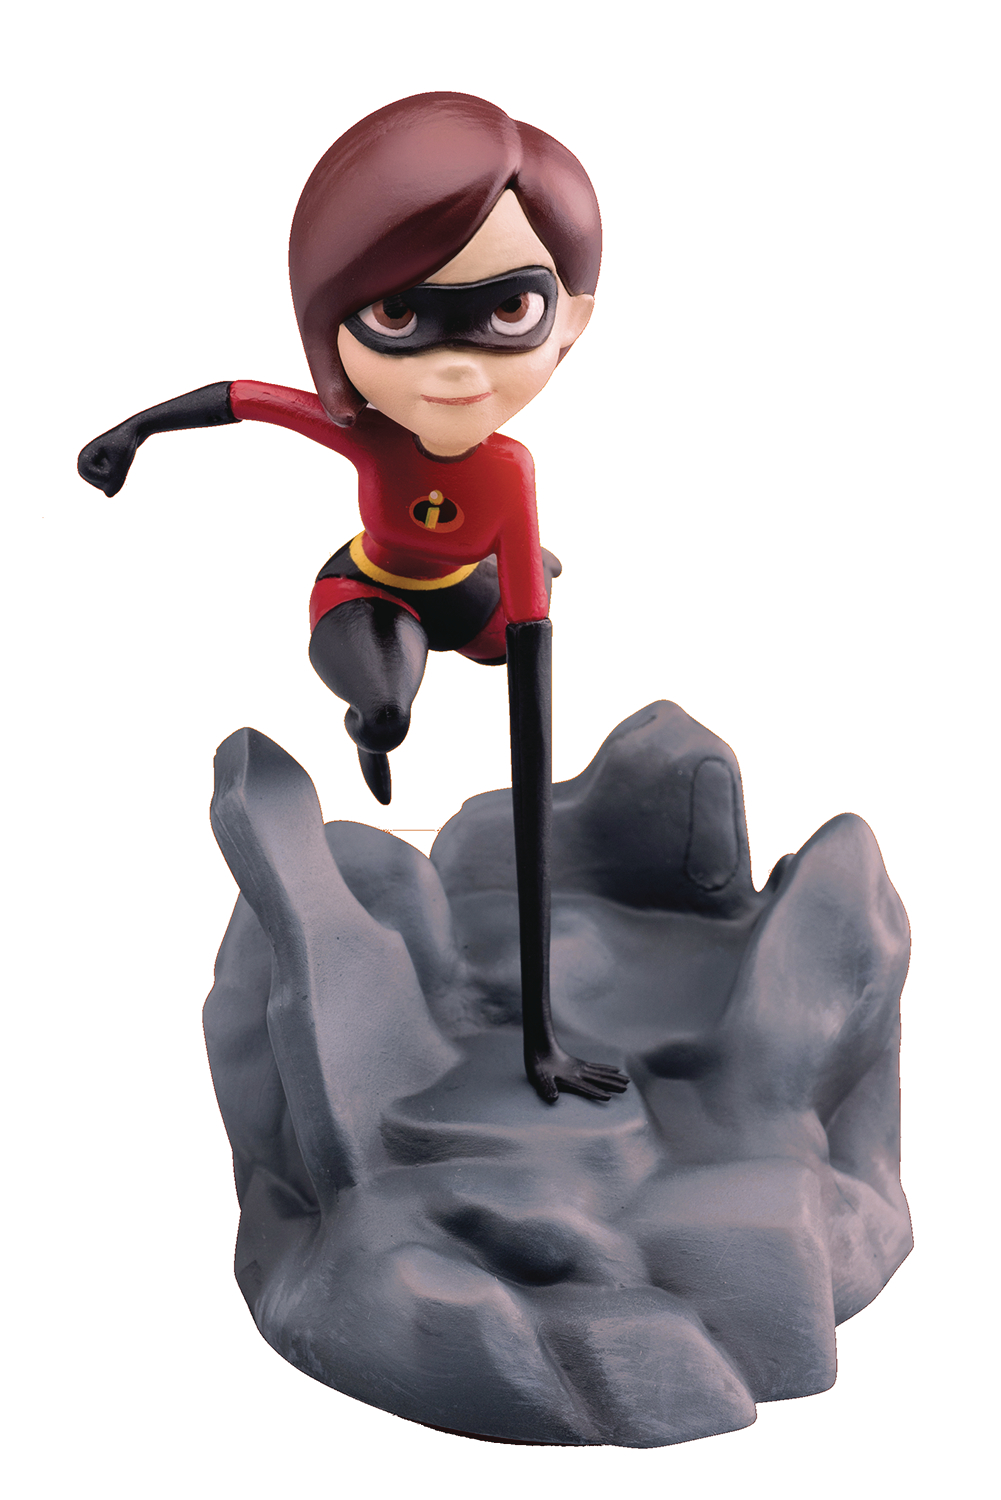 INCREDIBLES MEA-005 ELASTIGIRL PX FIG